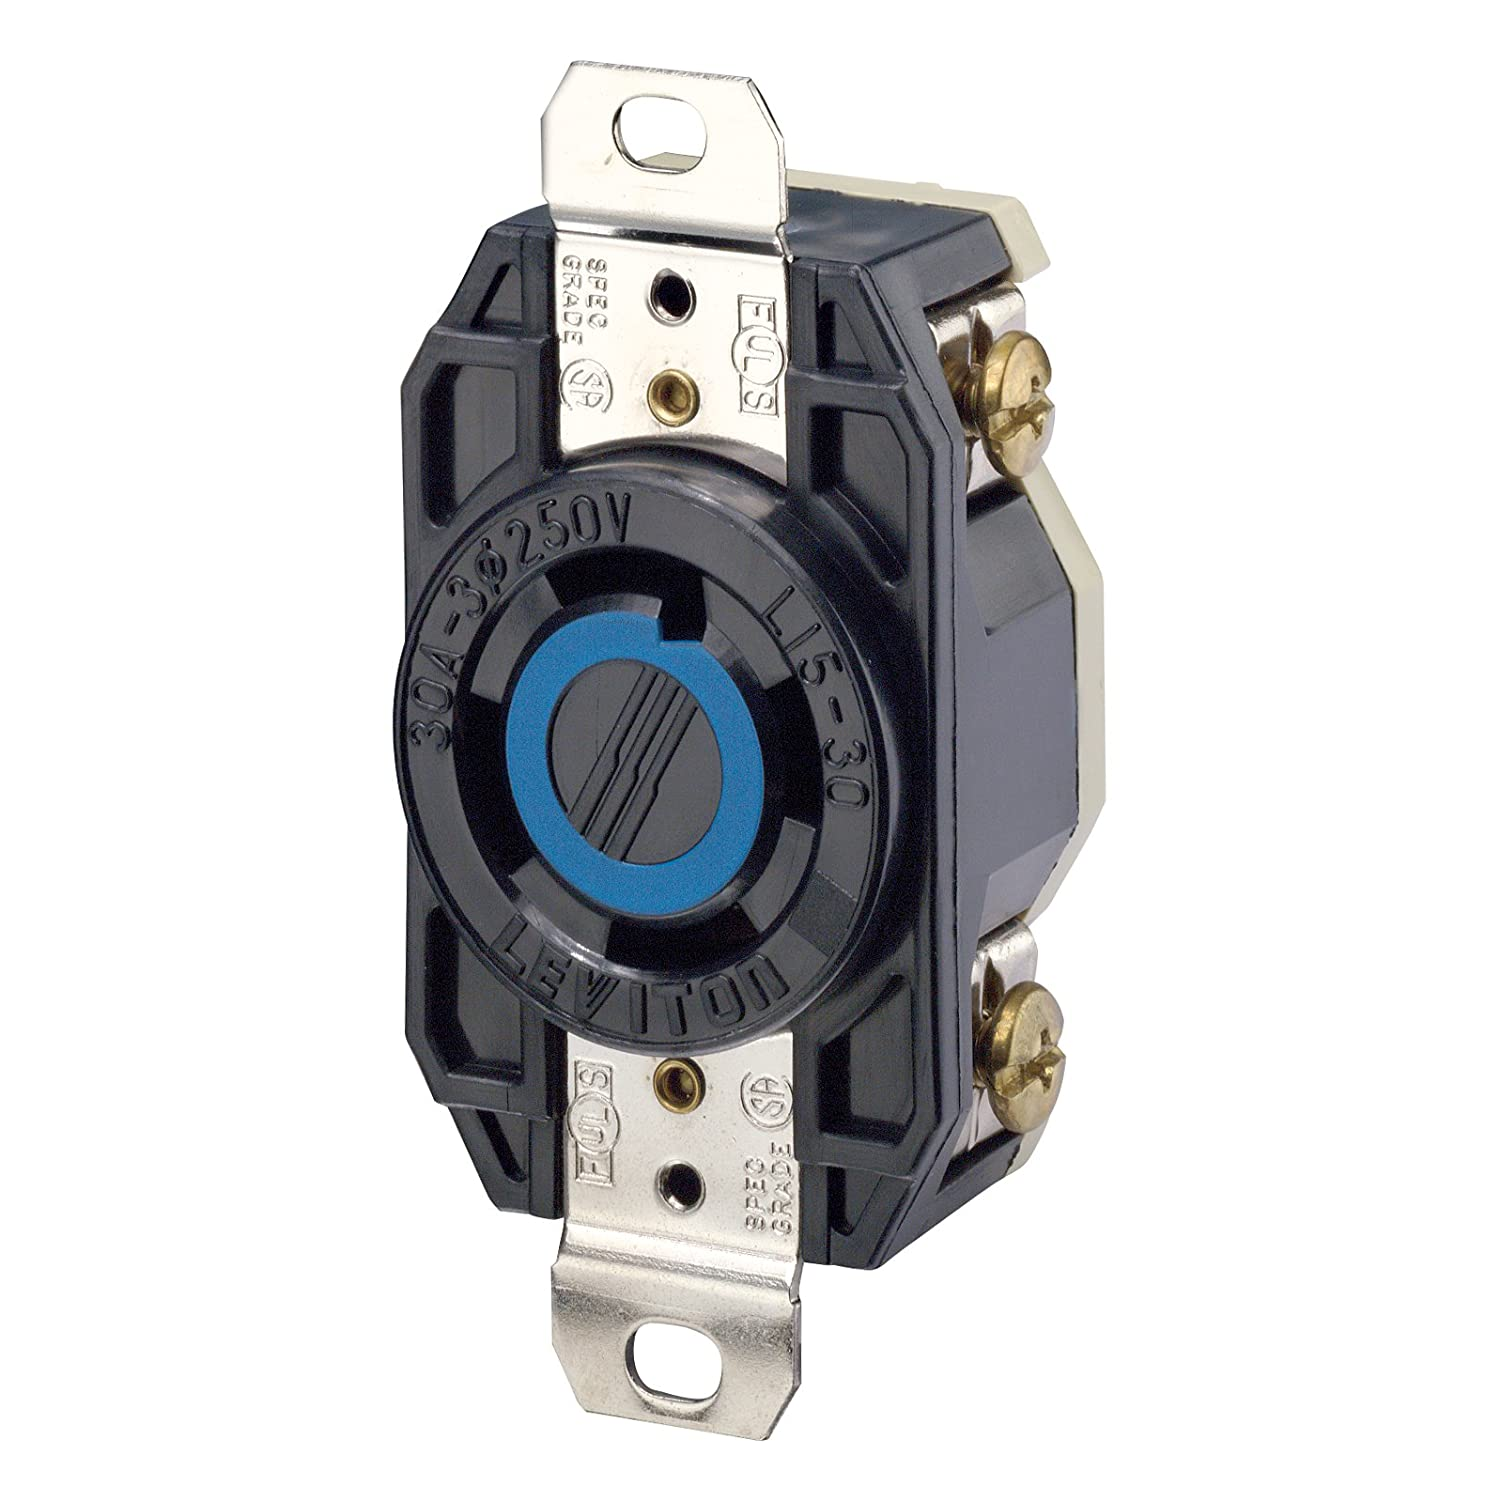 71QmADEo8EL._SL1500_ leviton 2720 30 amp, 250 volt 3 phase, flush mounting locking NEMA 1-15 at bakdesigns.co